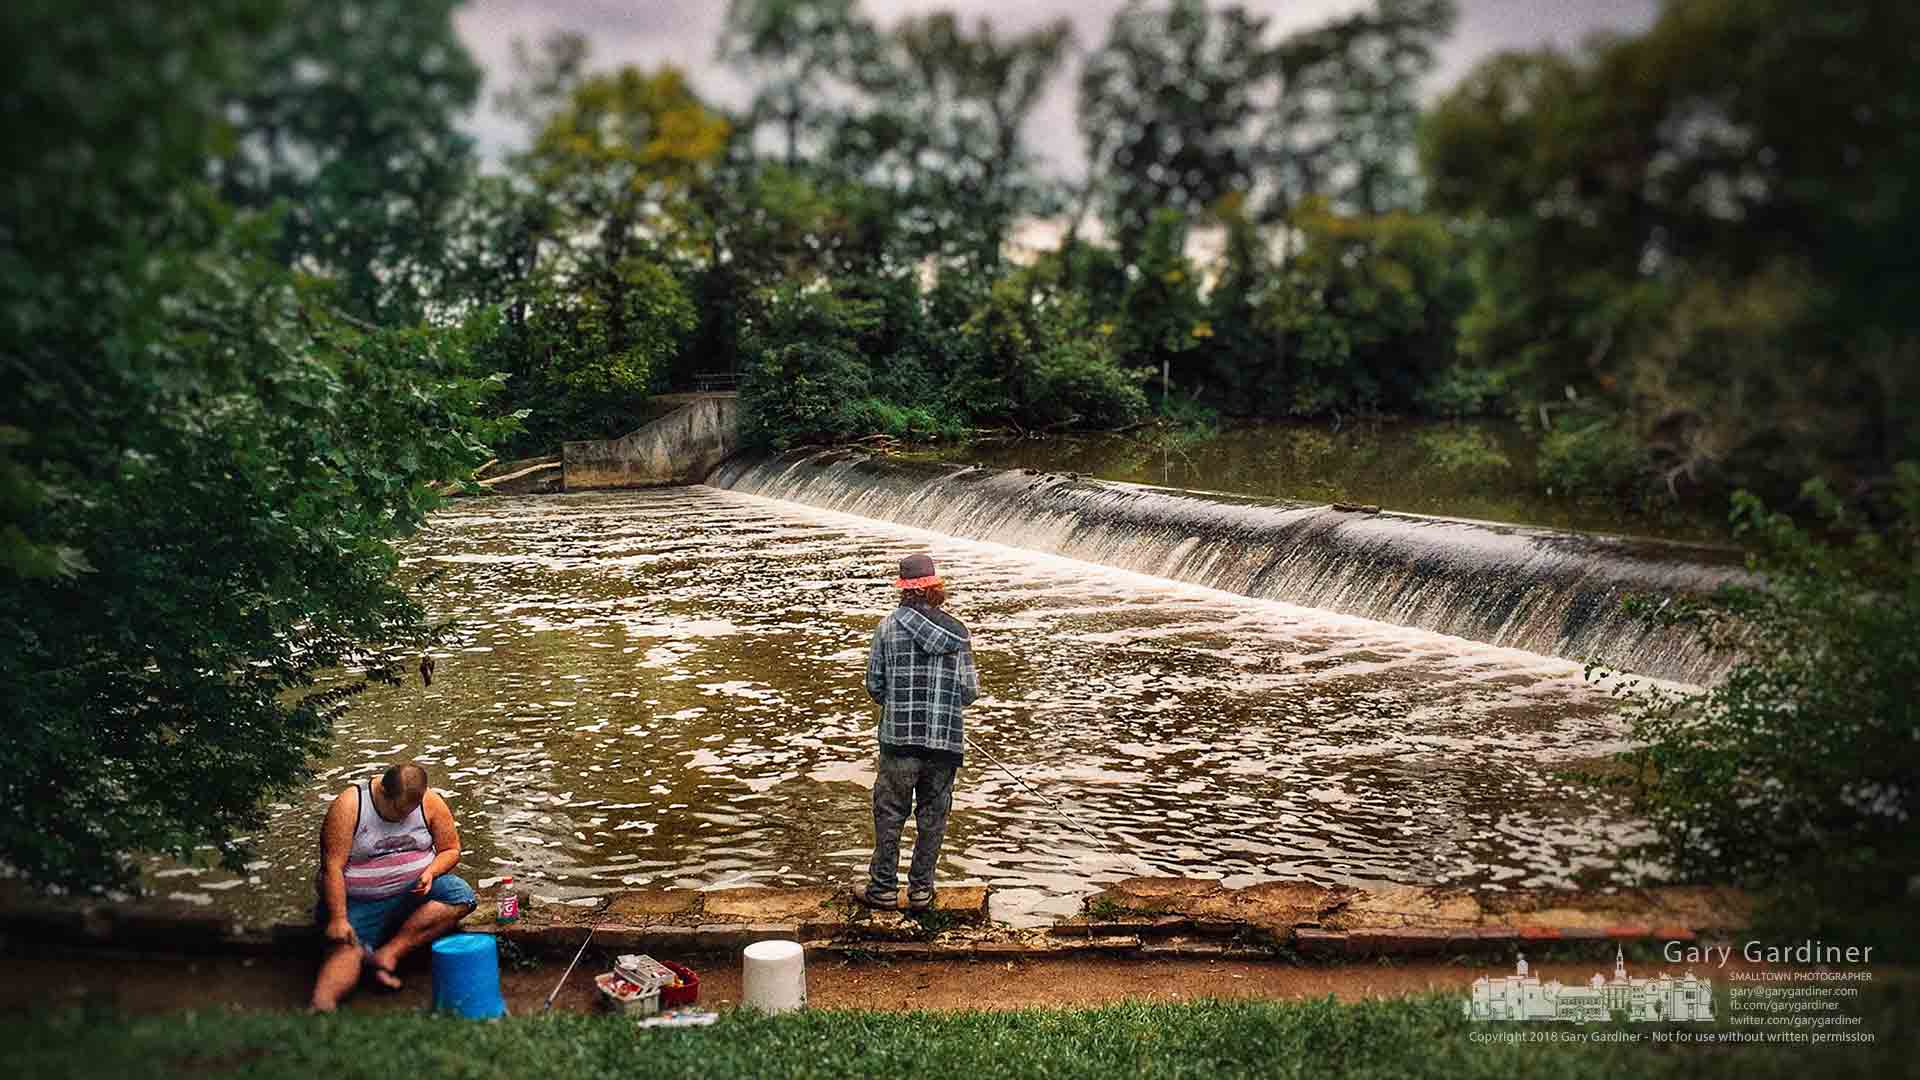 One angler checks his smartphone with his rod settled on the creekbed wall as the other reels his line across the rapid waters below the Aum Creek spillway in Westerville. My Final Photo for July 31, 2018.